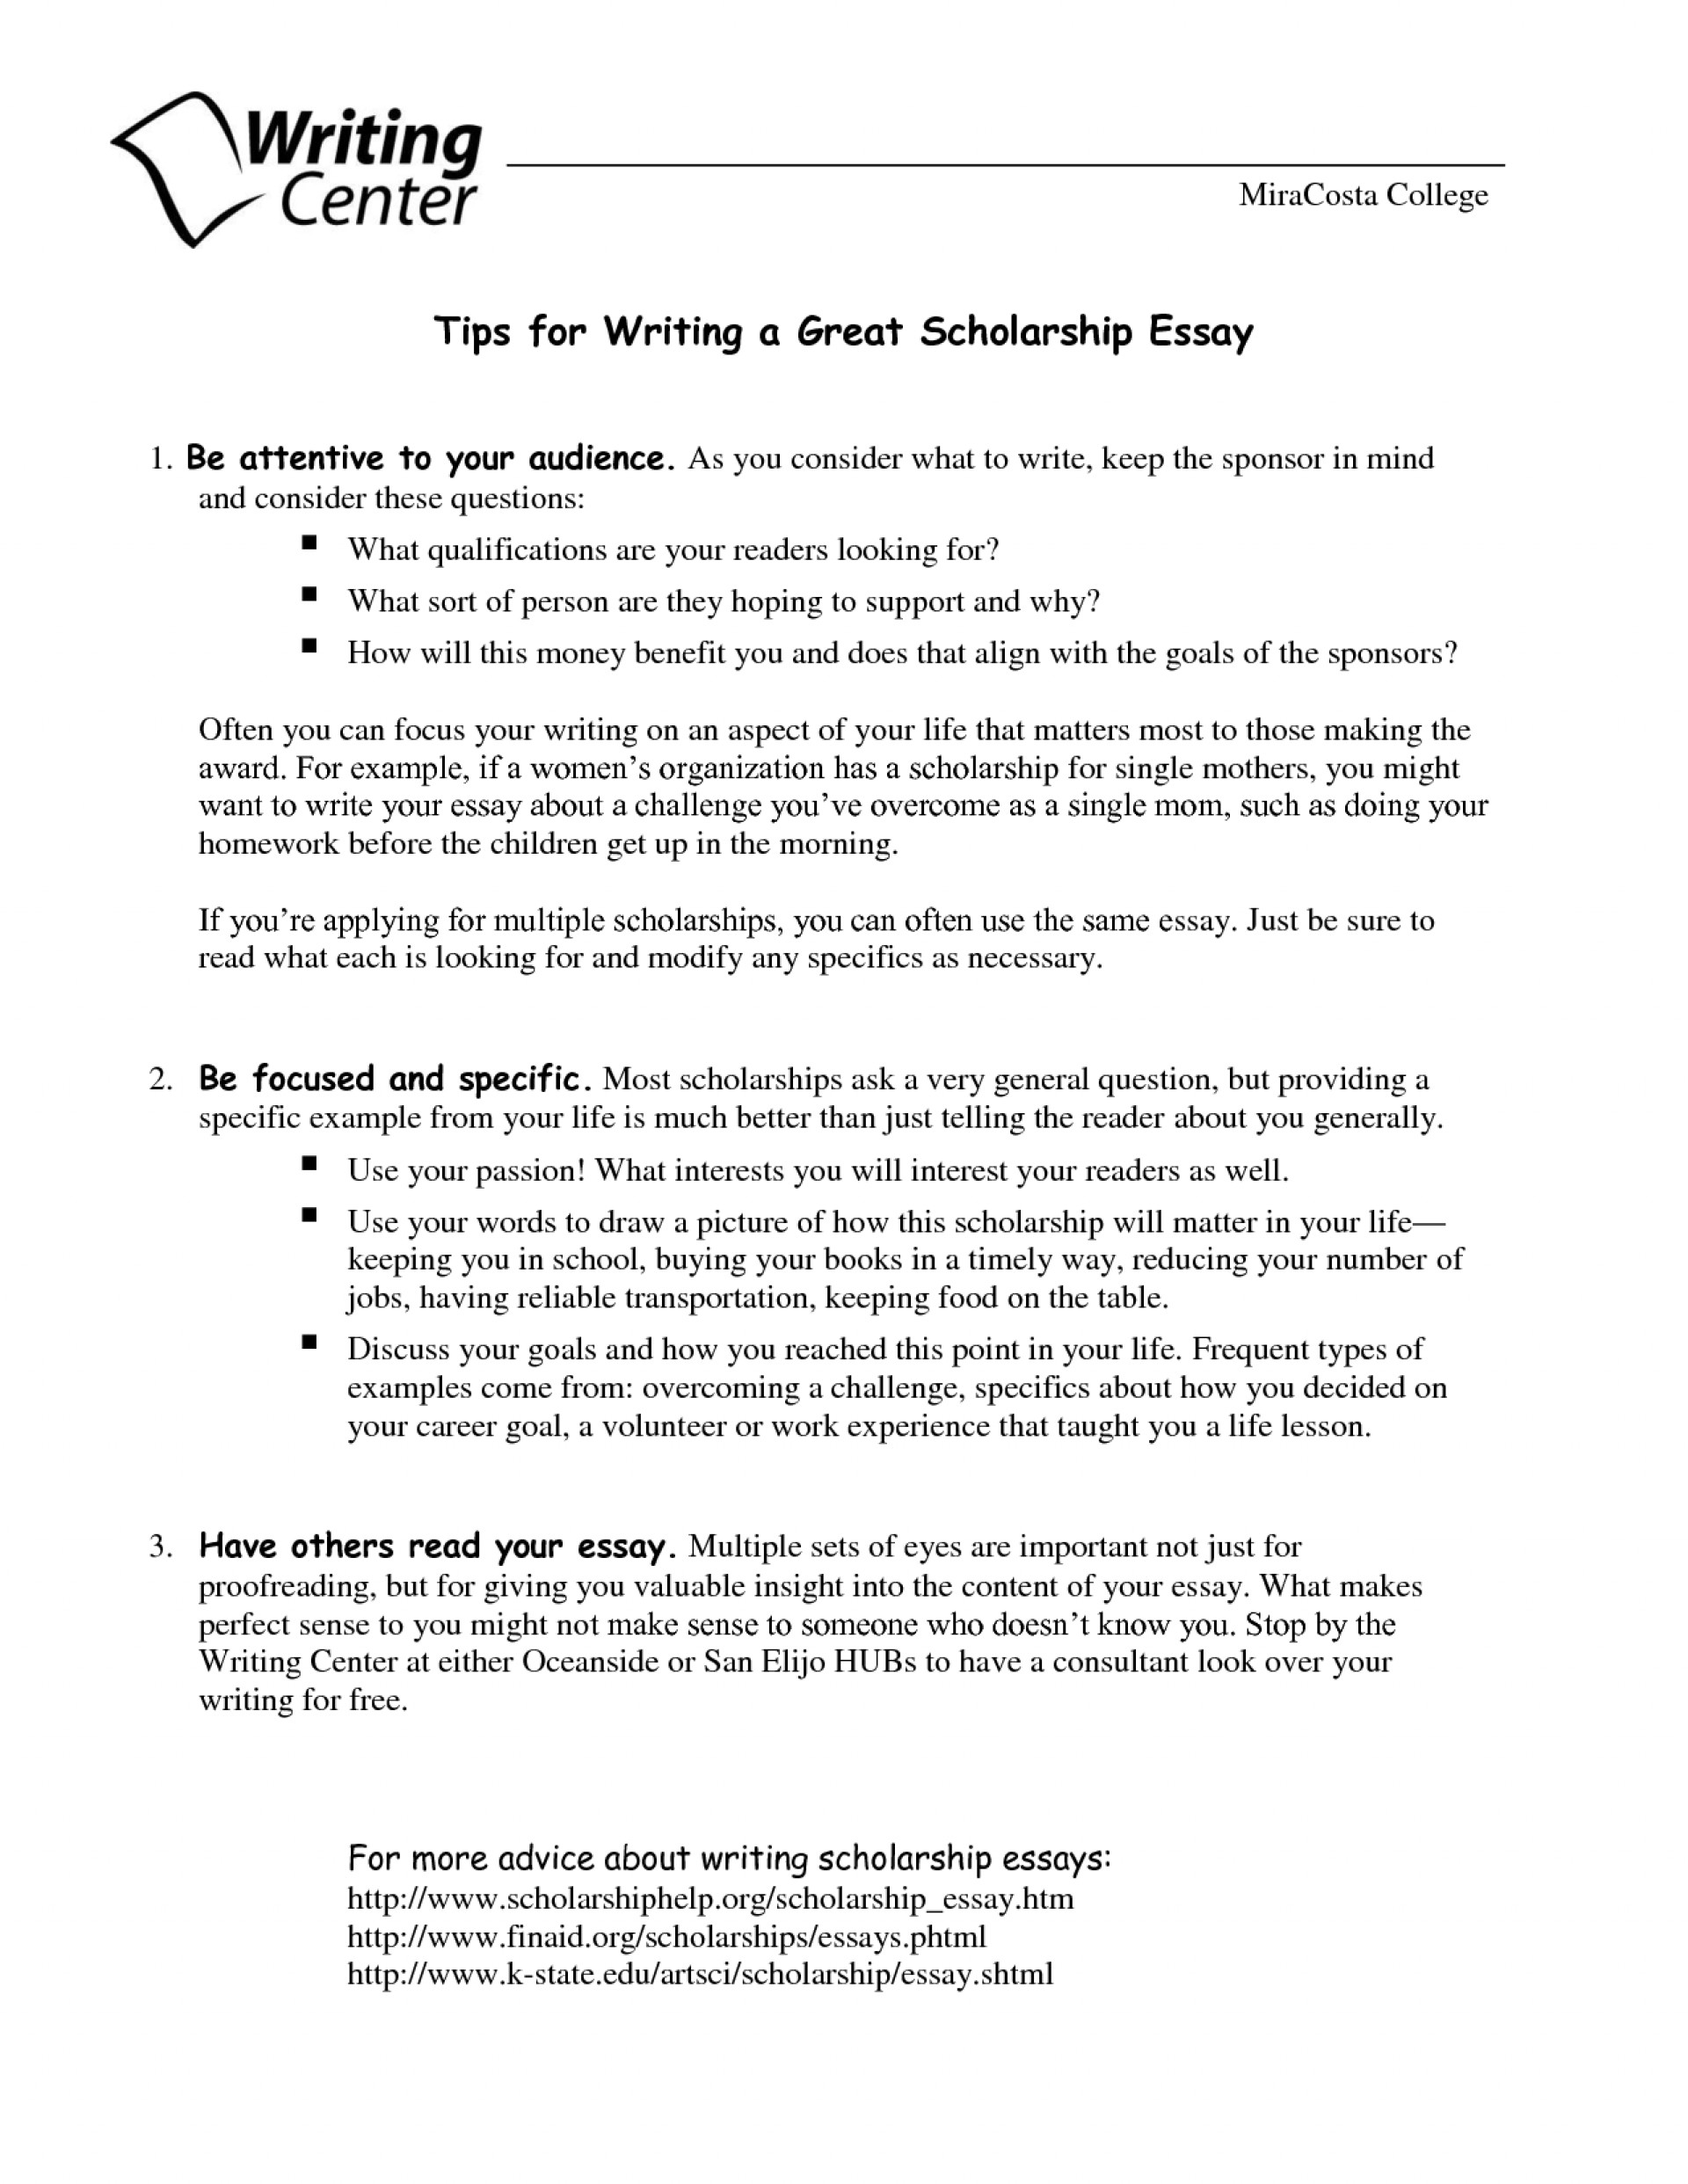 019 Application Essay Example Structure Format Free Letter Templates Online Jagsa Us Sample Scholarship Engineering N8cud Nursing Mba Excellent Apply Texas Prompts 2019 College Help Guidelines 1920